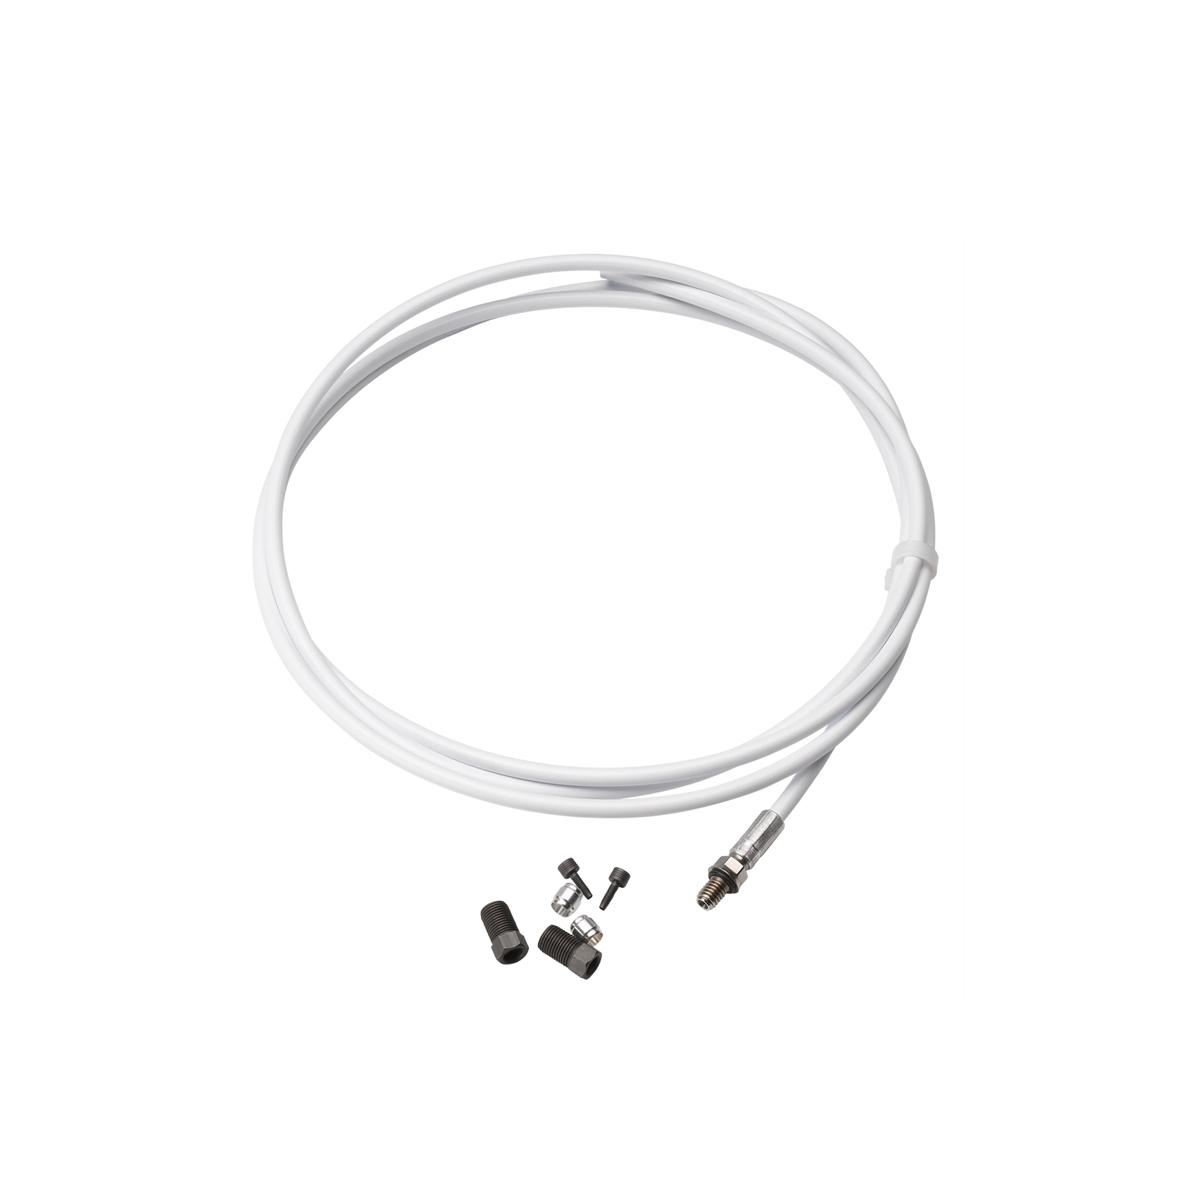 Sram Hydraulic Line Kit - Guide Rsc/guide Rs/guide R/db5/level Tl, 2000mm, Stainless, White, Qty 1